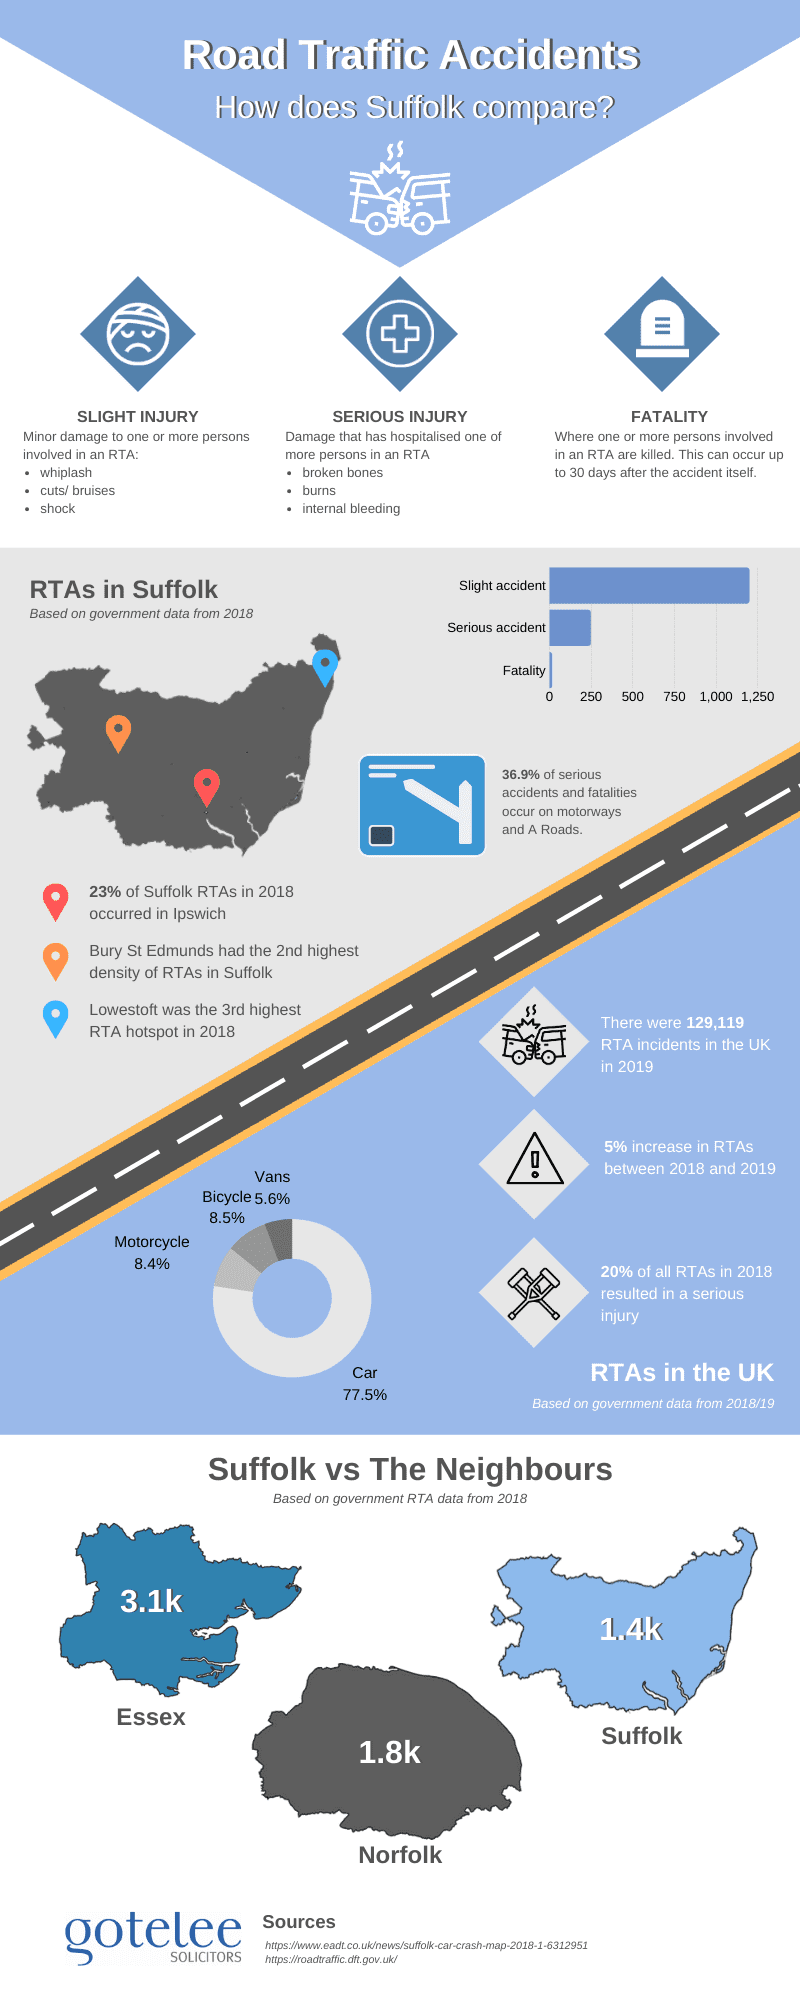 Road Traffic Accidents: How Does Suffolk Compare to the UK? #infographic